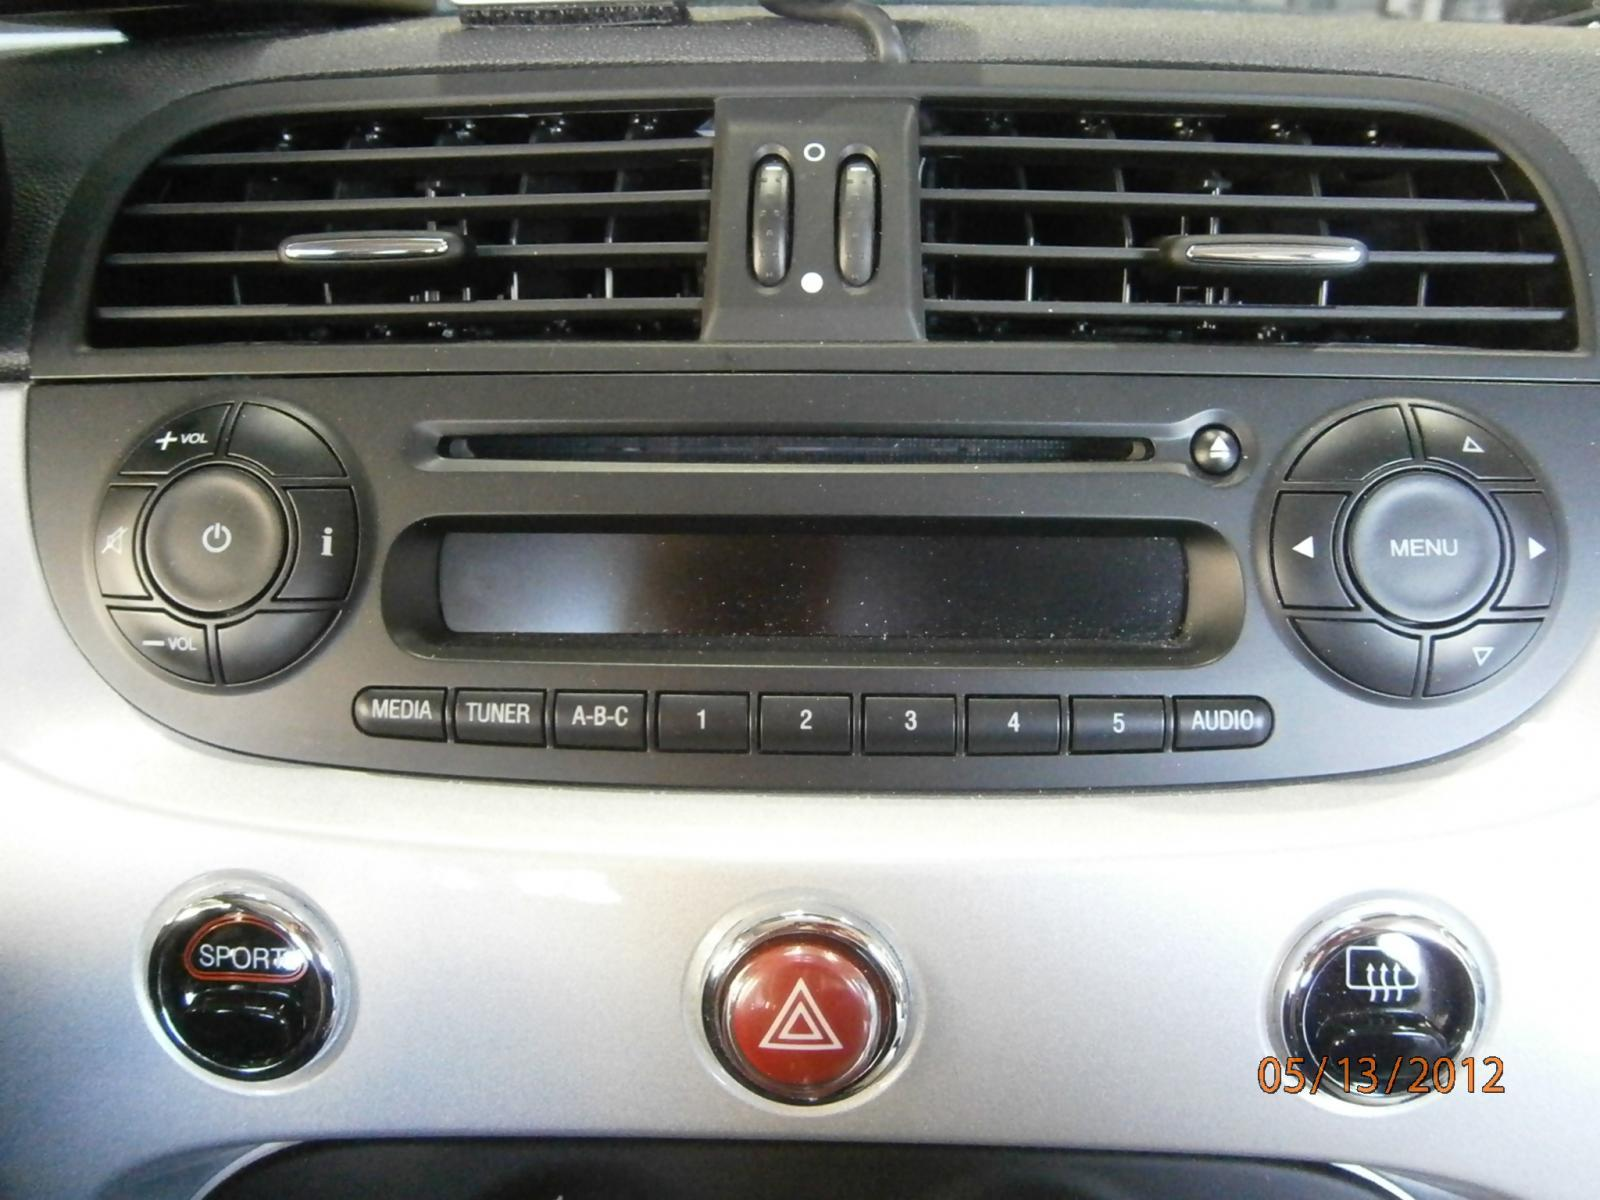 2012 fiat 500 radio removal by troy audi0 fiat 500. Black Bedroom Furniture Sets. Home Design Ideas